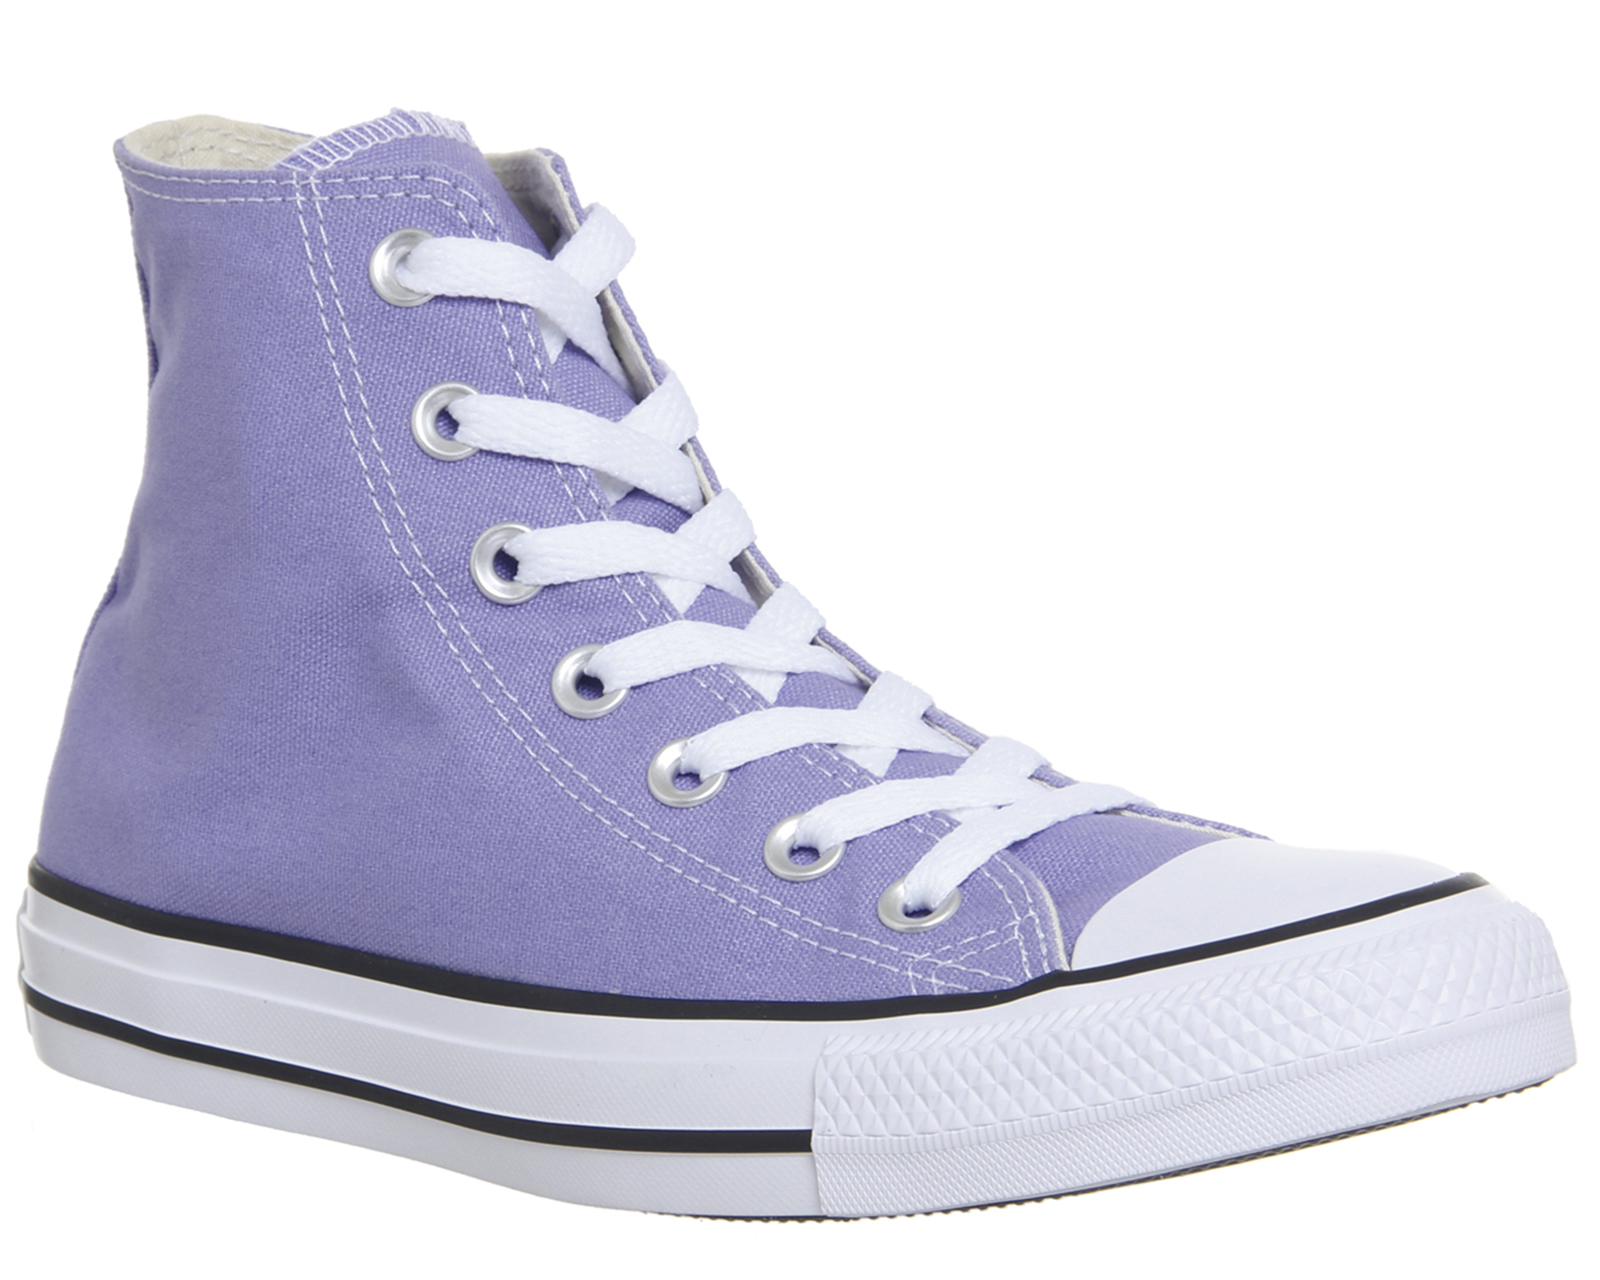 Converse C Taylor All Star Hi Chuck Scarpe Sneaker Canvas Twilight Pulse 160455c